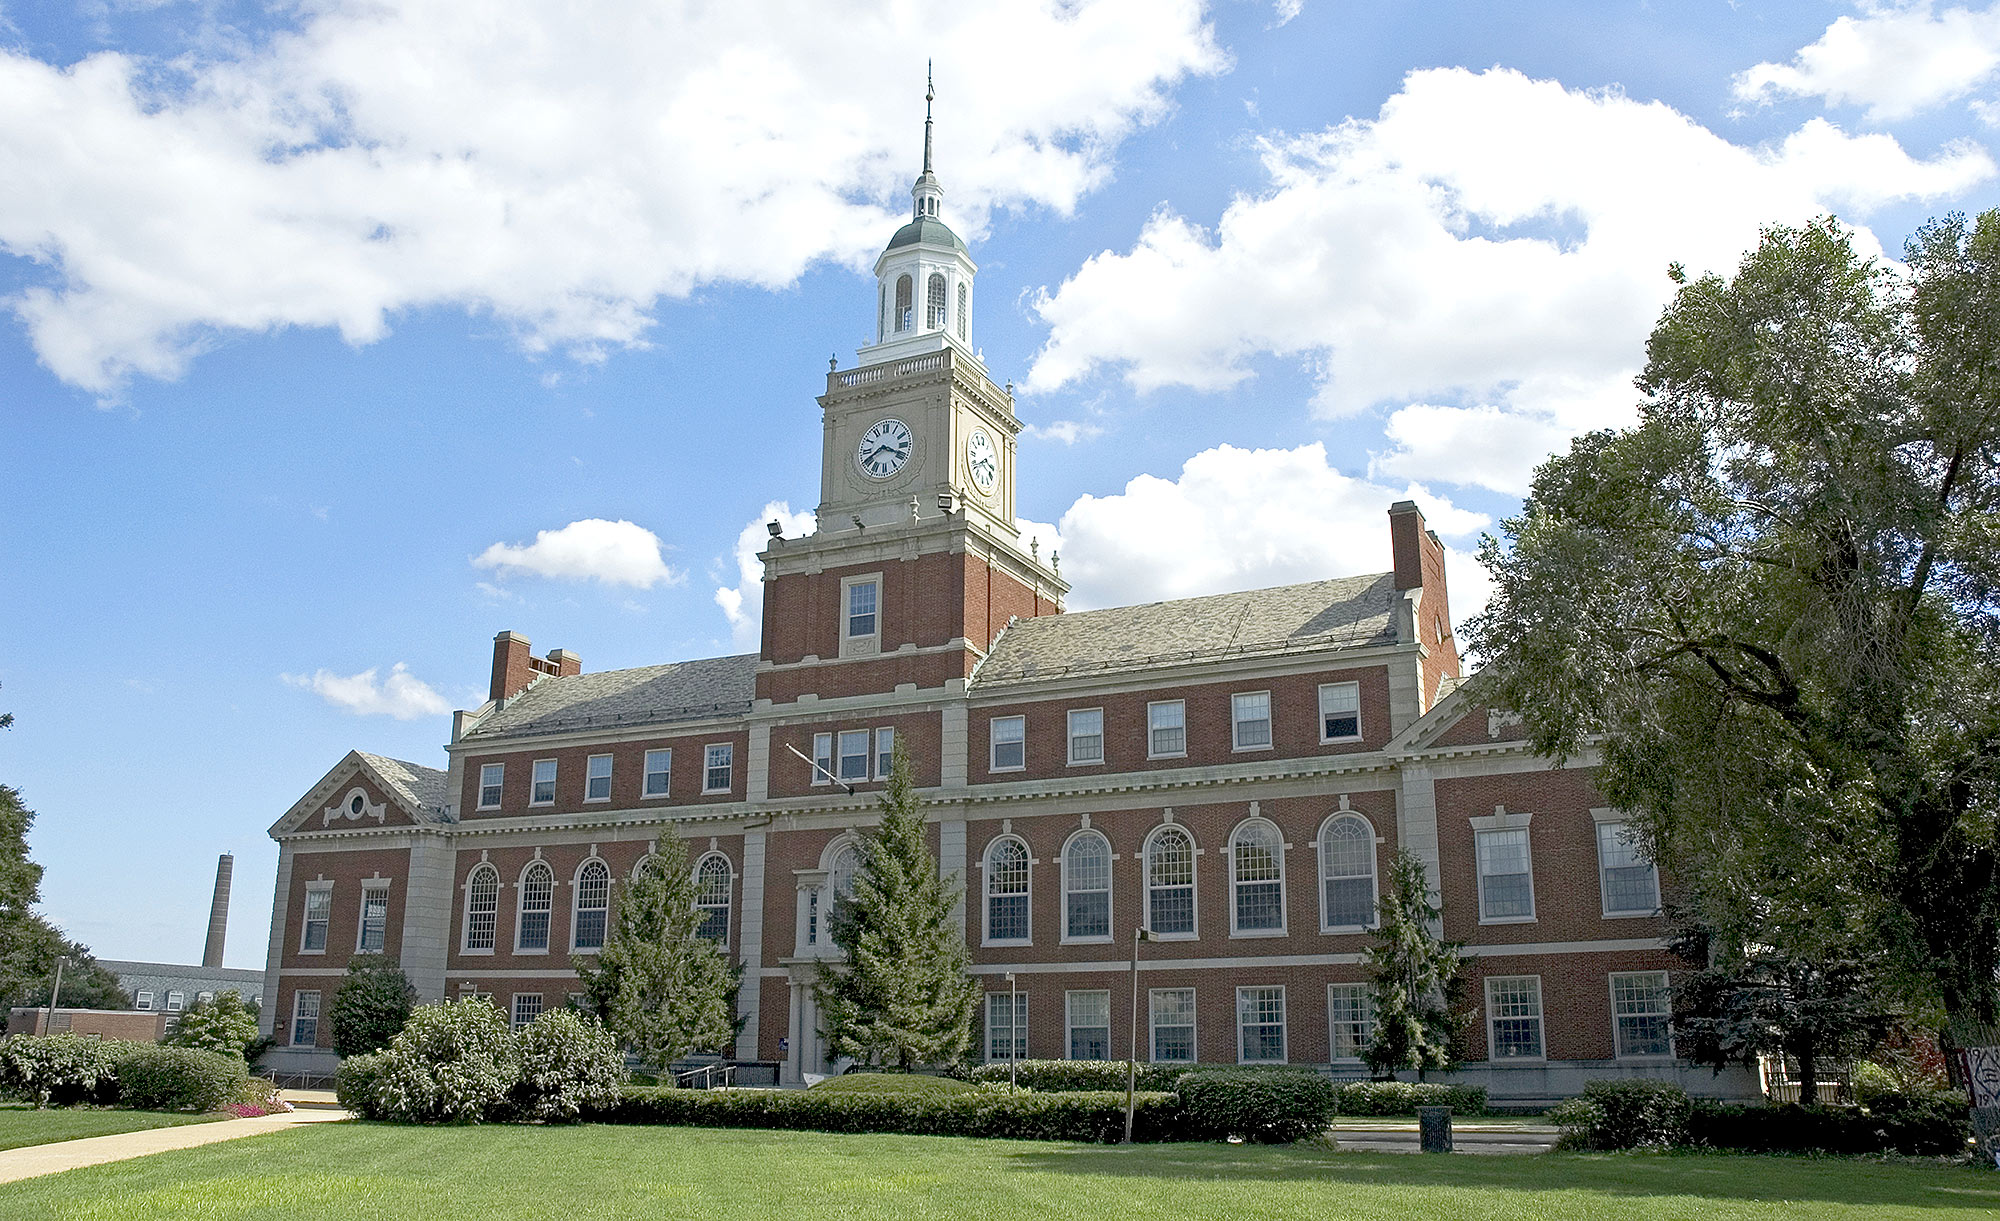 USA, Washington DC, Howard University, facade of historic Founders Library with blue sky and white clouds above